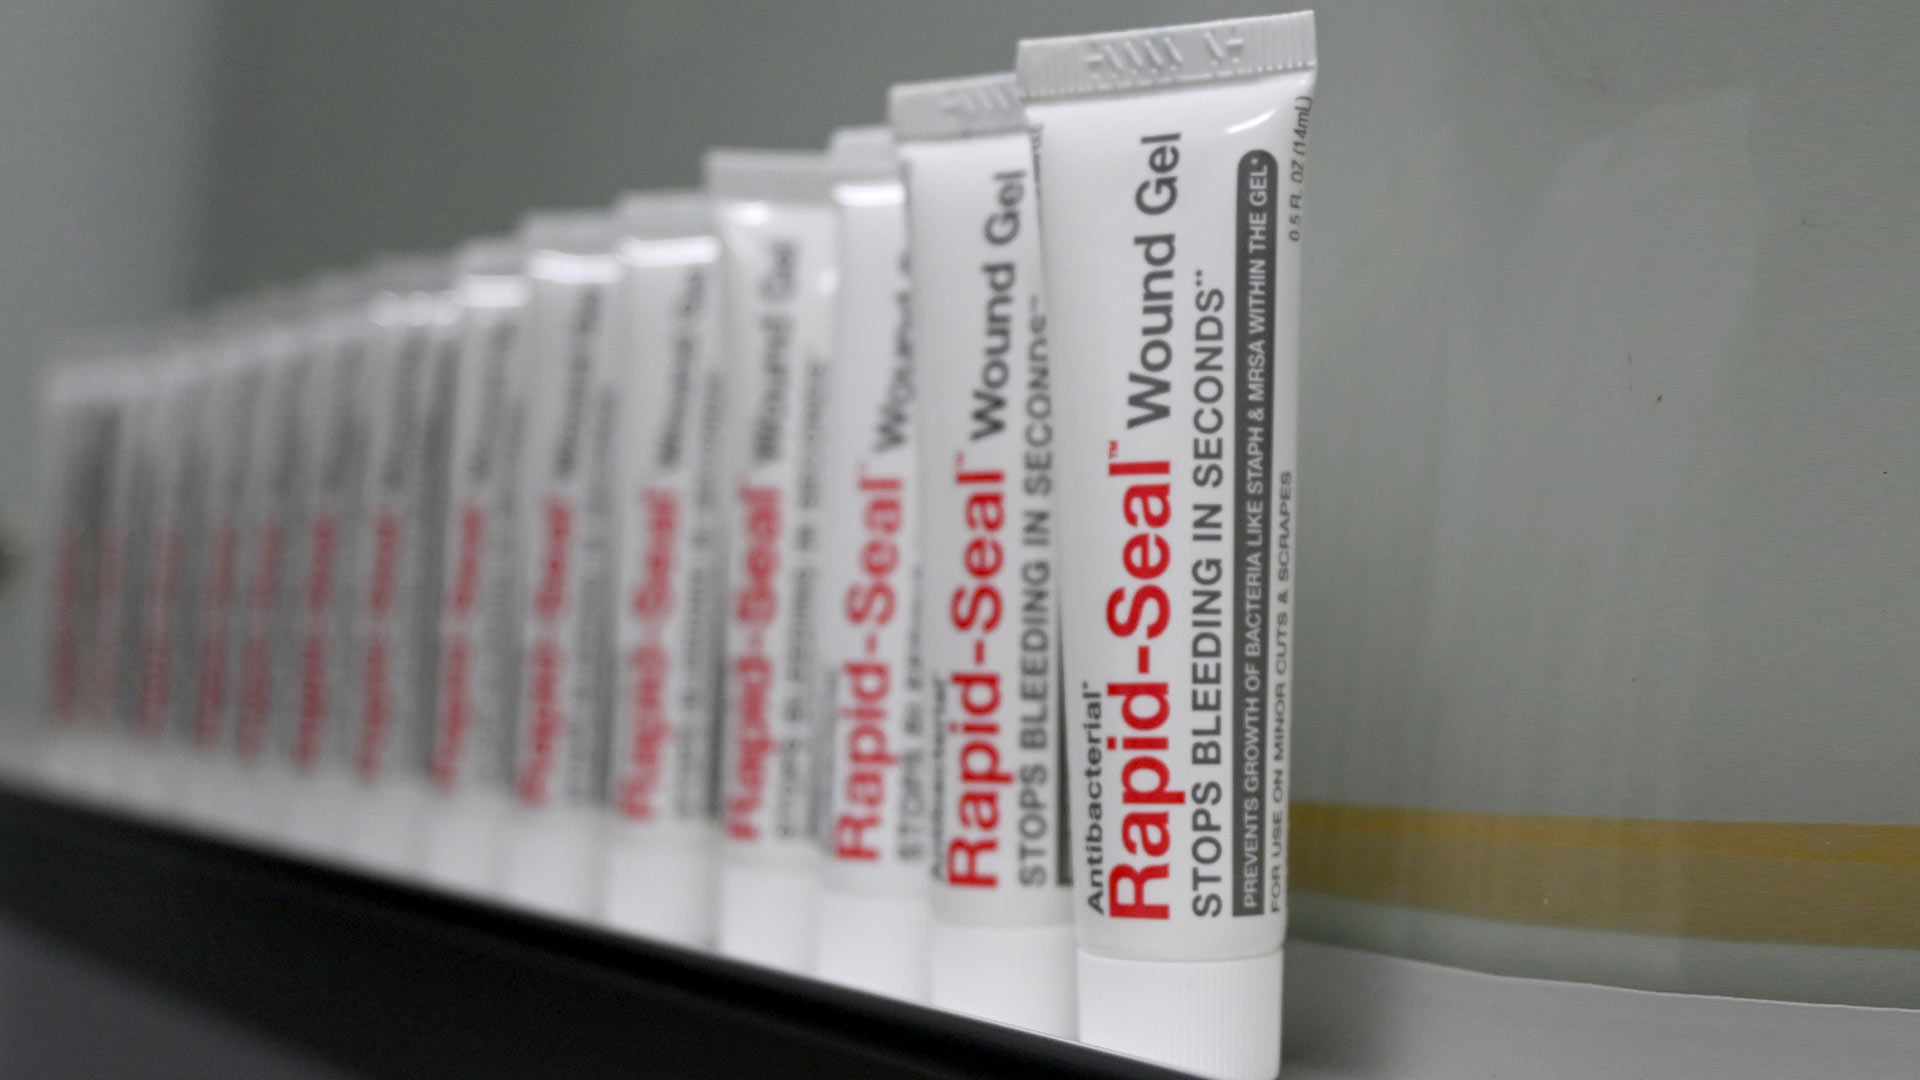 A UMD grad's new product to stop bleeding, which he began developing as a bioengineering student, is now available over the counter nationwide, as well as online. (Photo courtesy of Medcura)